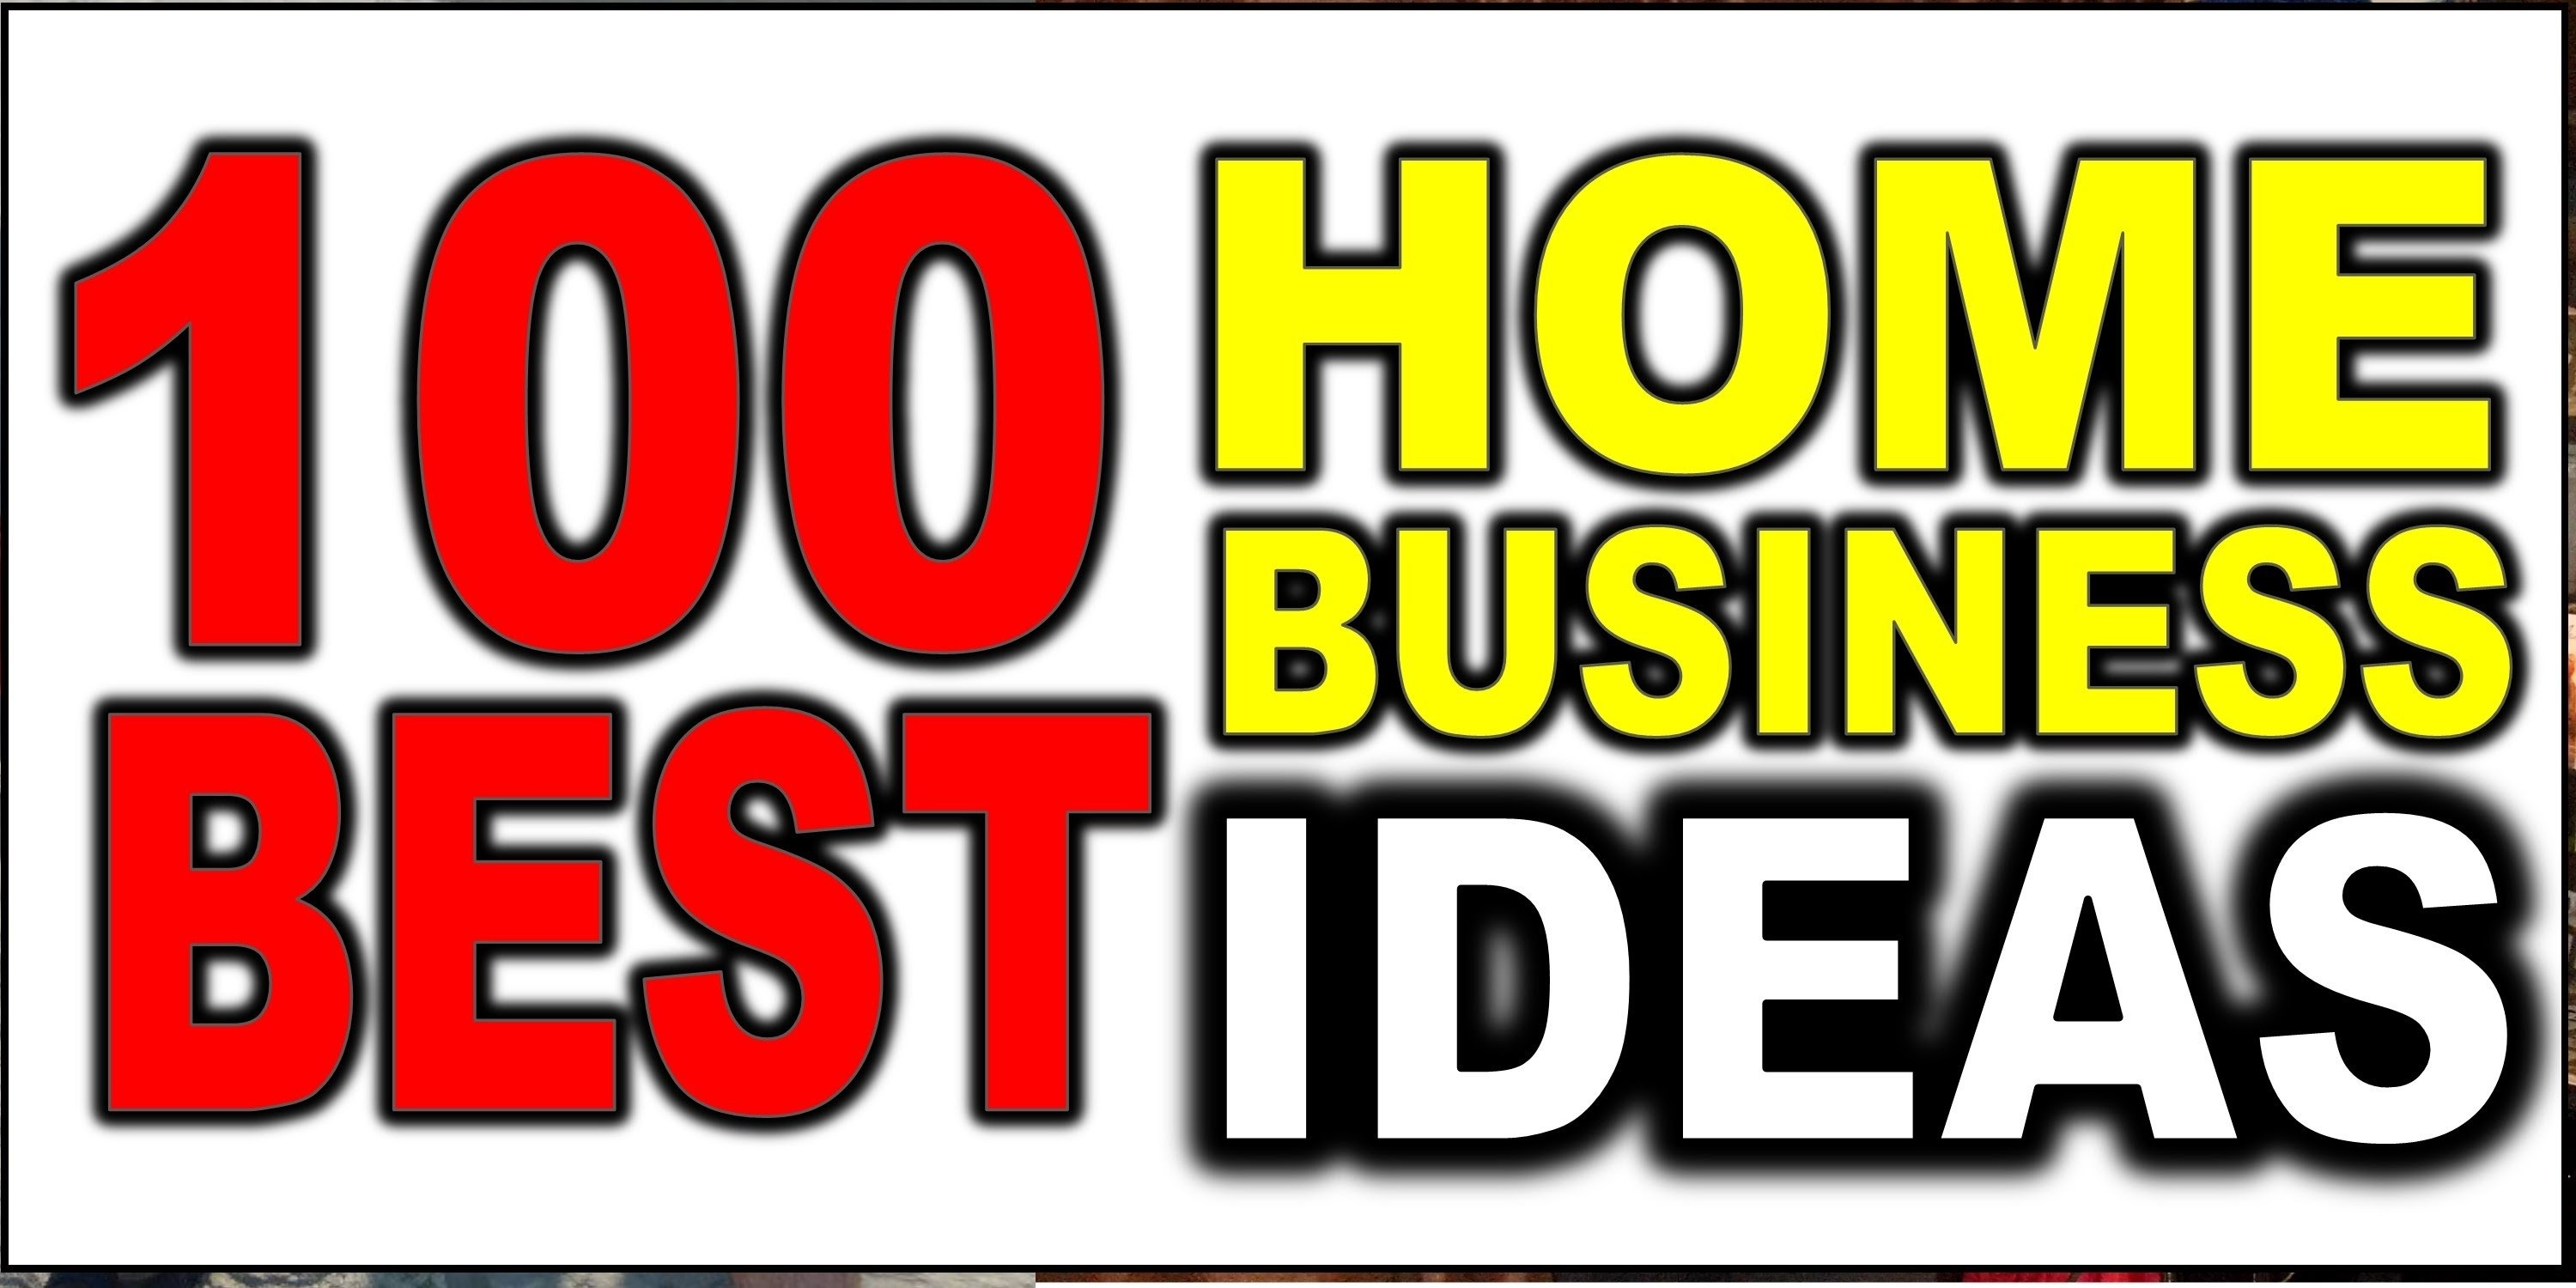 10 Best Ideas To Start A Small Business 100 work from home business ideas youtube 3 2021